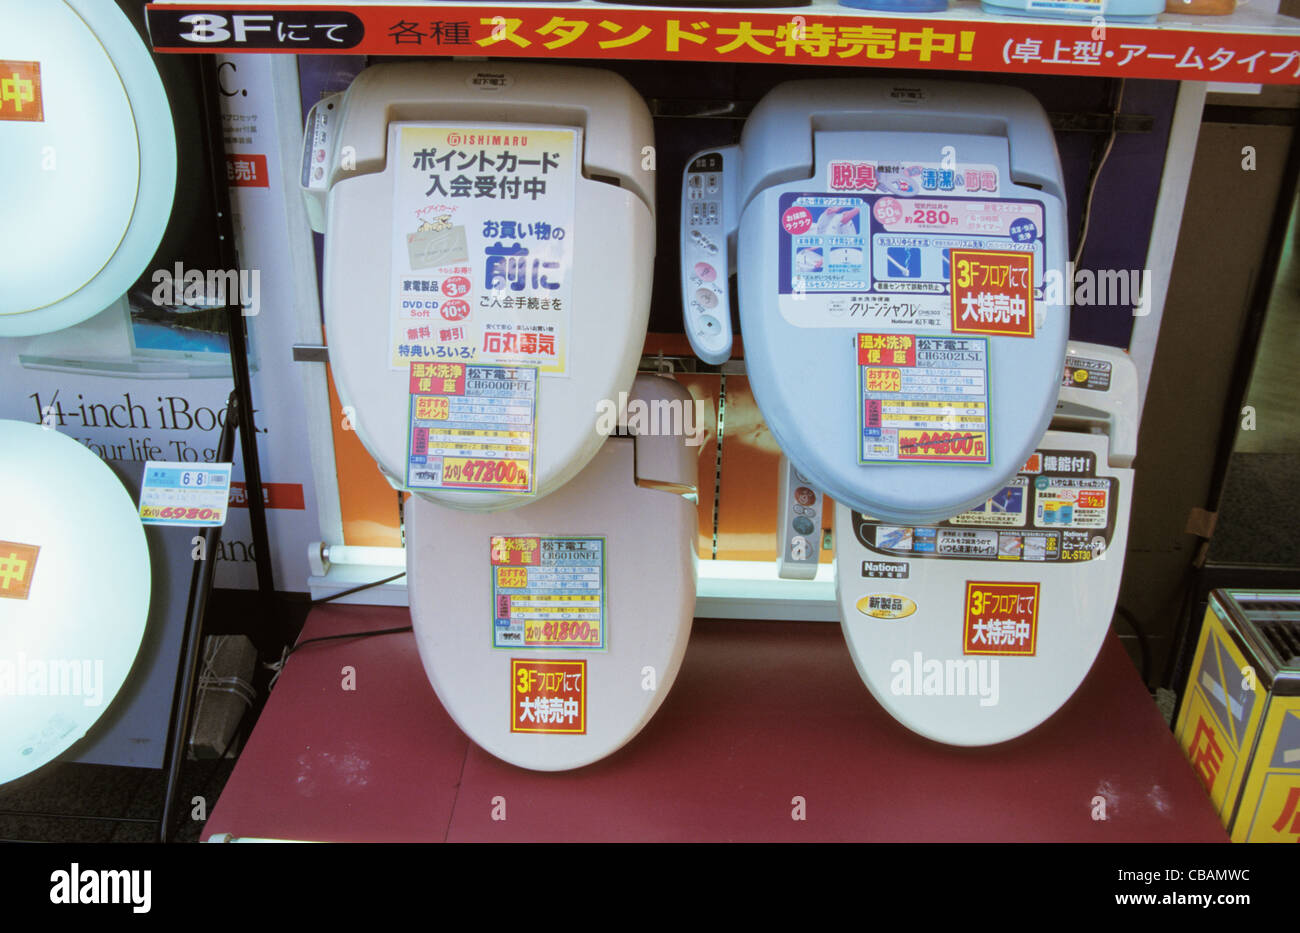 japanese heated toilet seat. Akihabara Japan Tokyo Household electrical items on display outside shop I  e Heated toilet seats etc